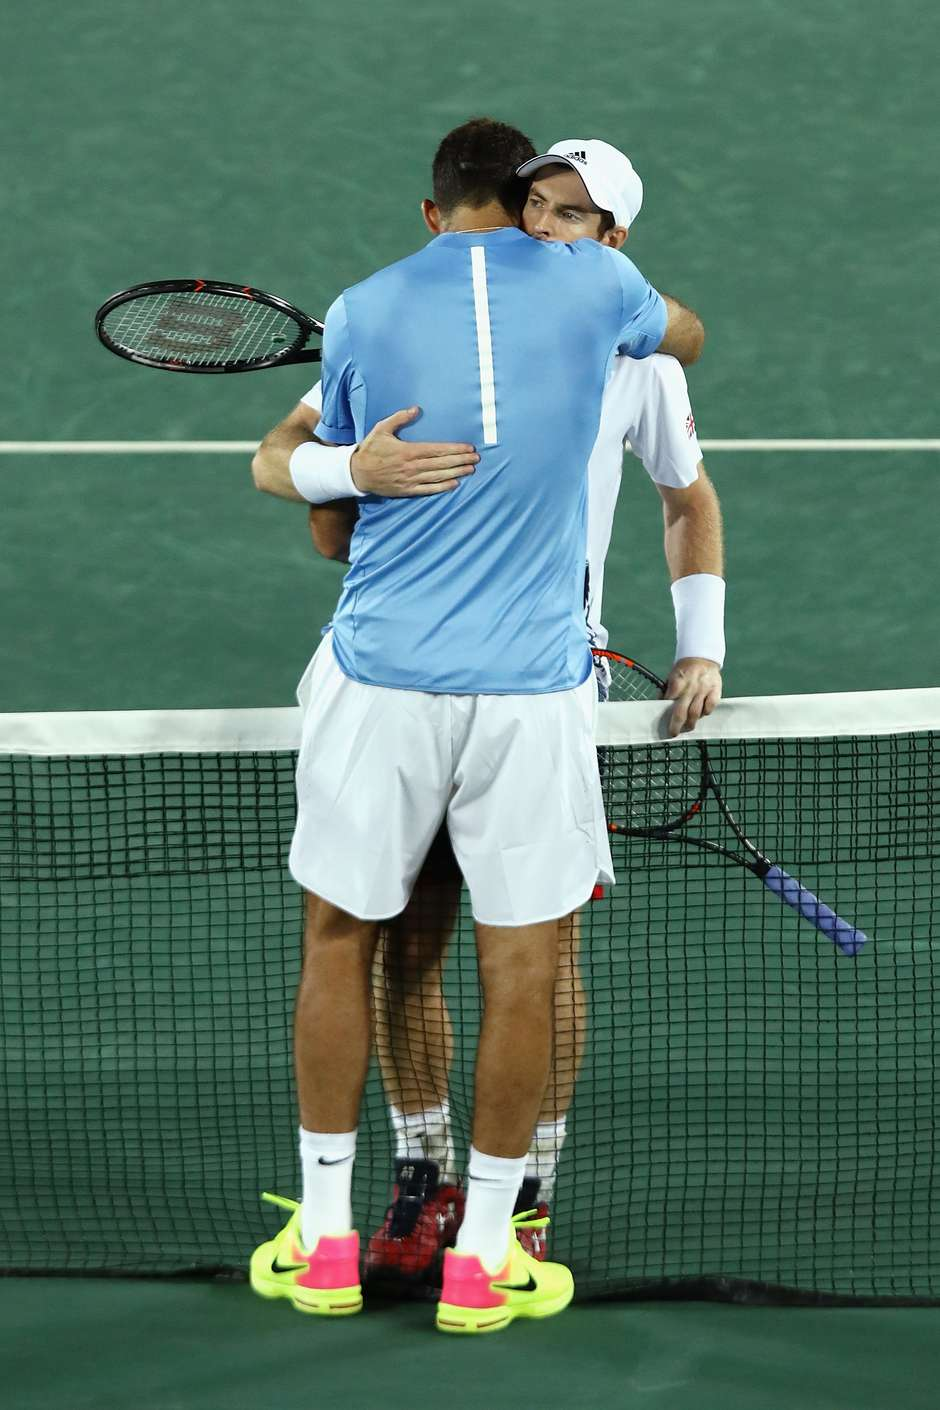 Murray e Del Potro - (Foto: Getty Images)